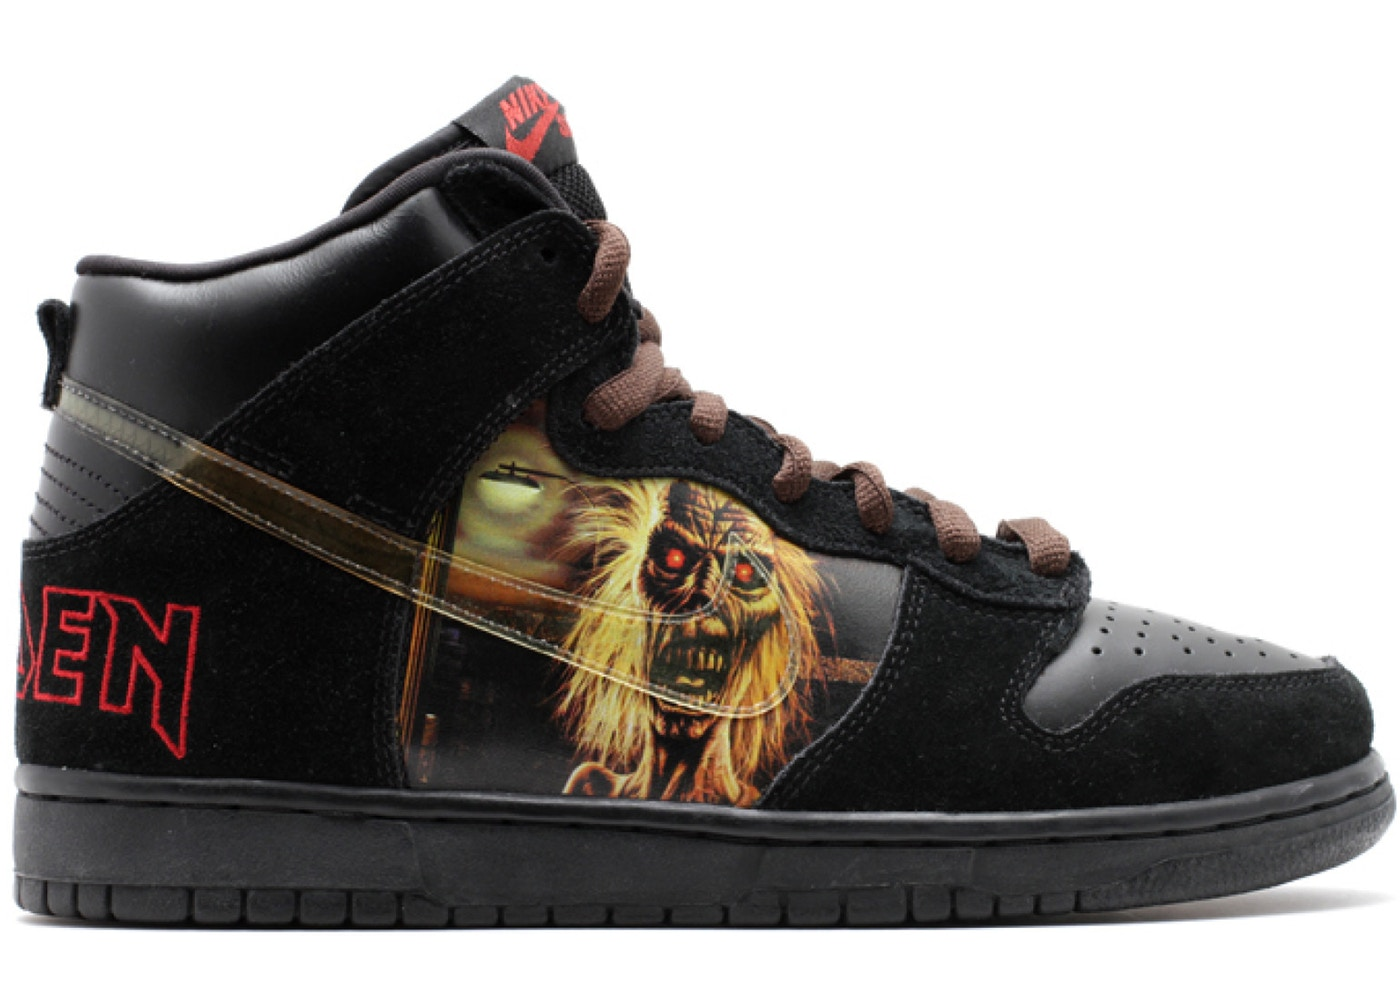 timeless design 1ccbf 37e3b Nike SB Dunk High Iron Maiden - undefined